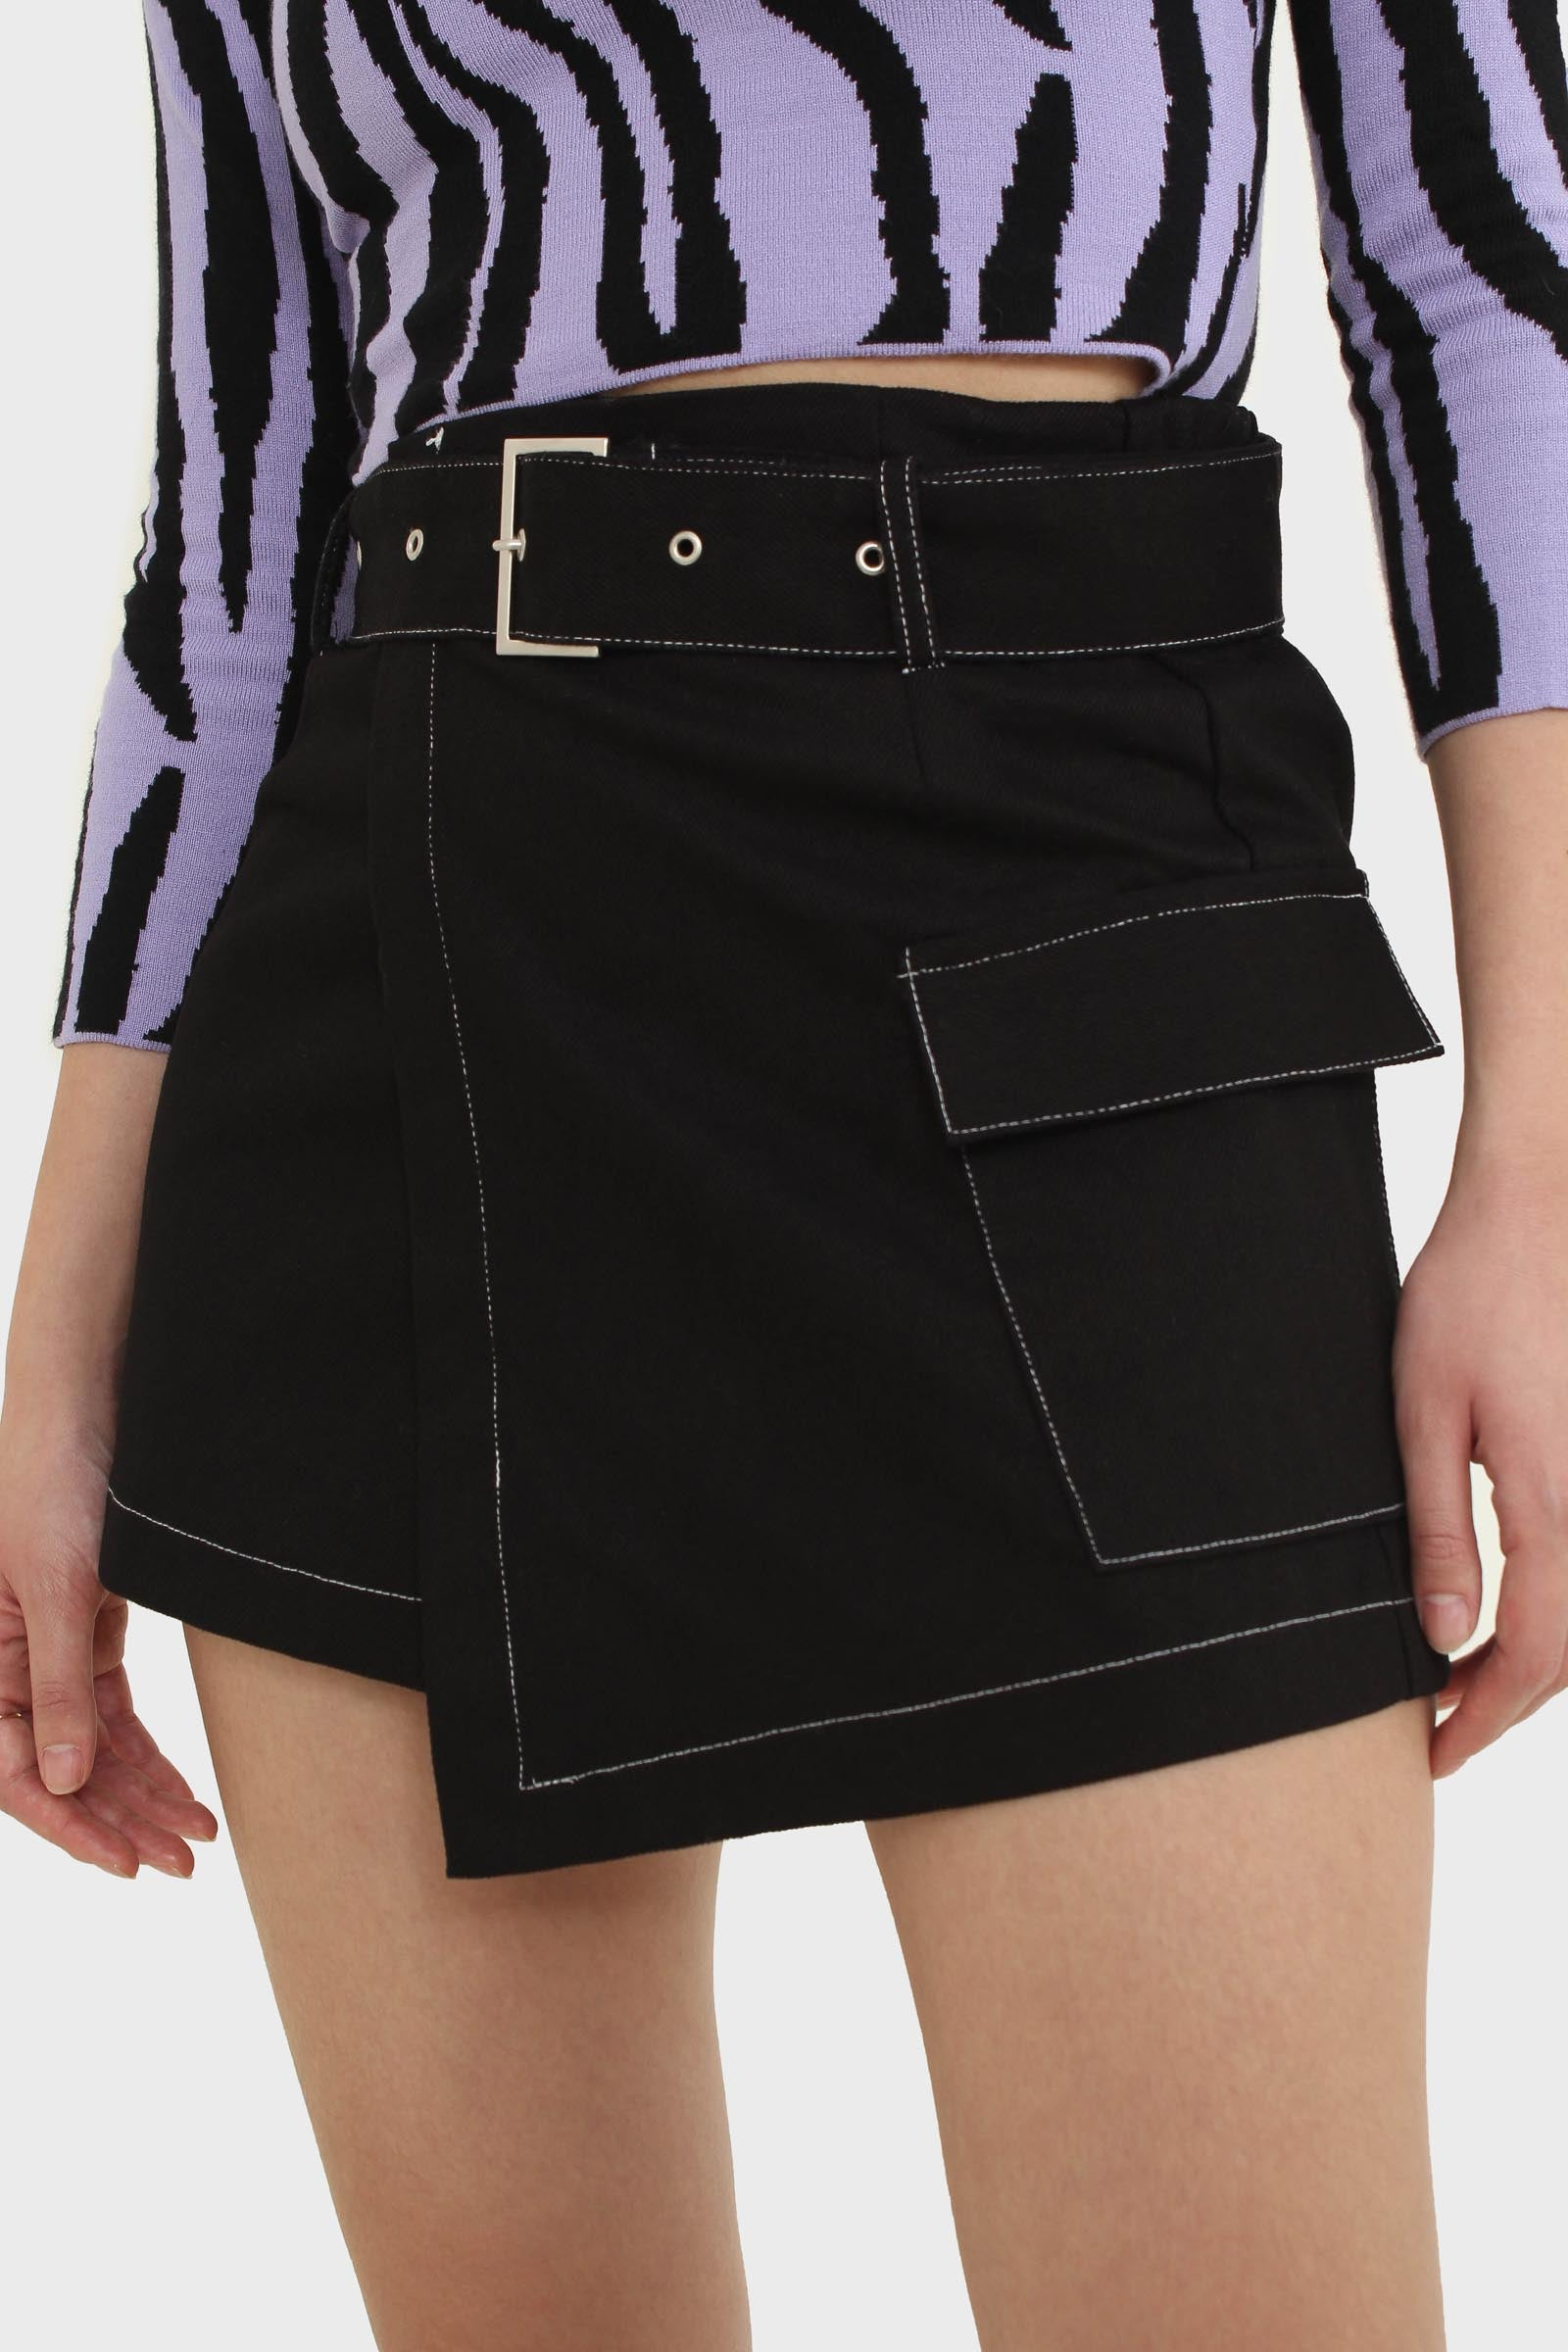 Black and white contrast stitch belted pocket mini3